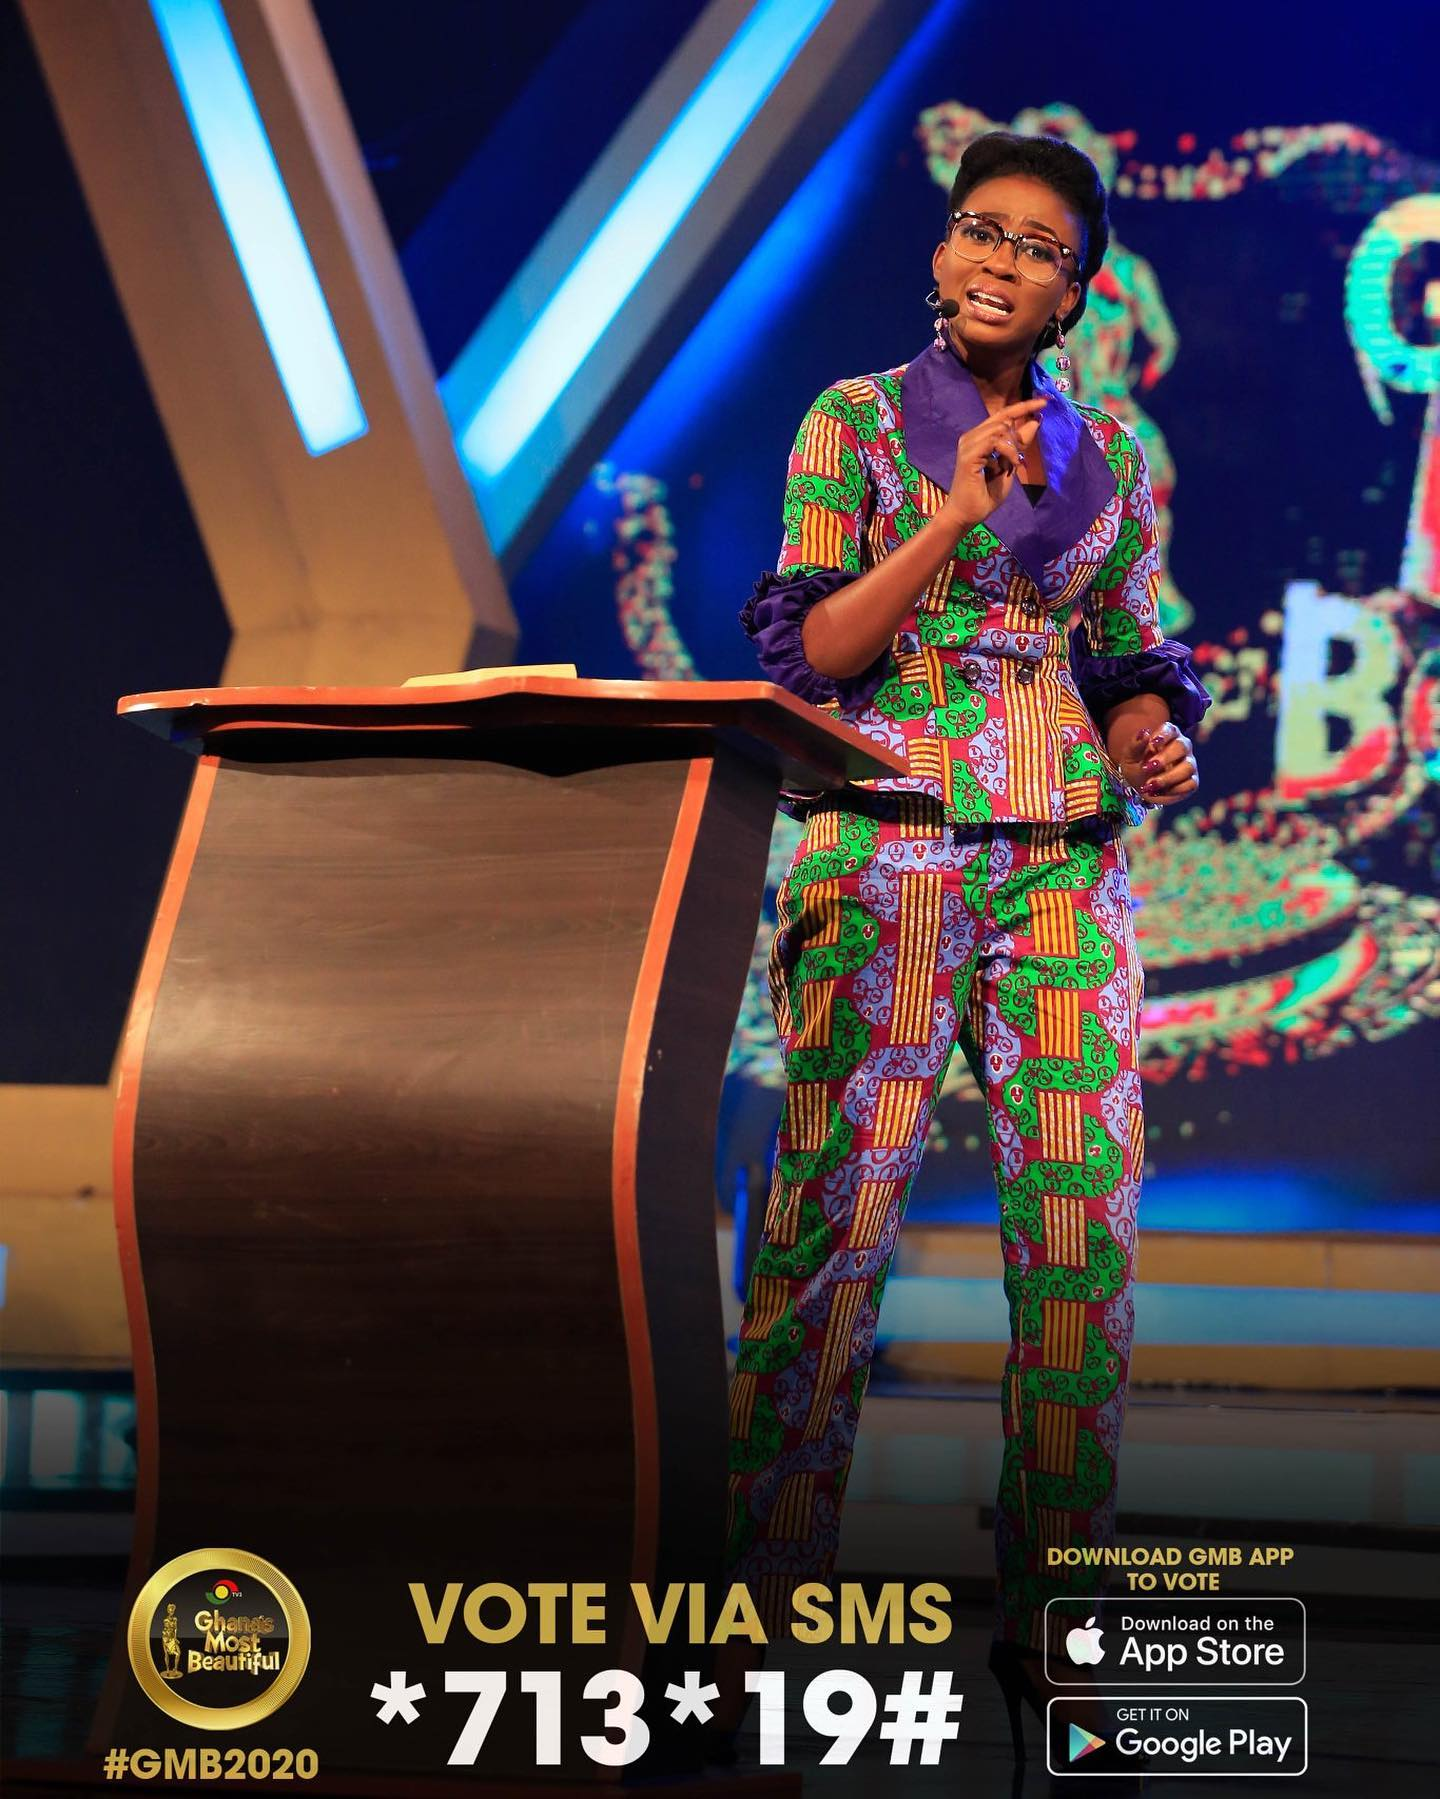 GMB 2020 Final: All six finalists pitch against nationalising one language